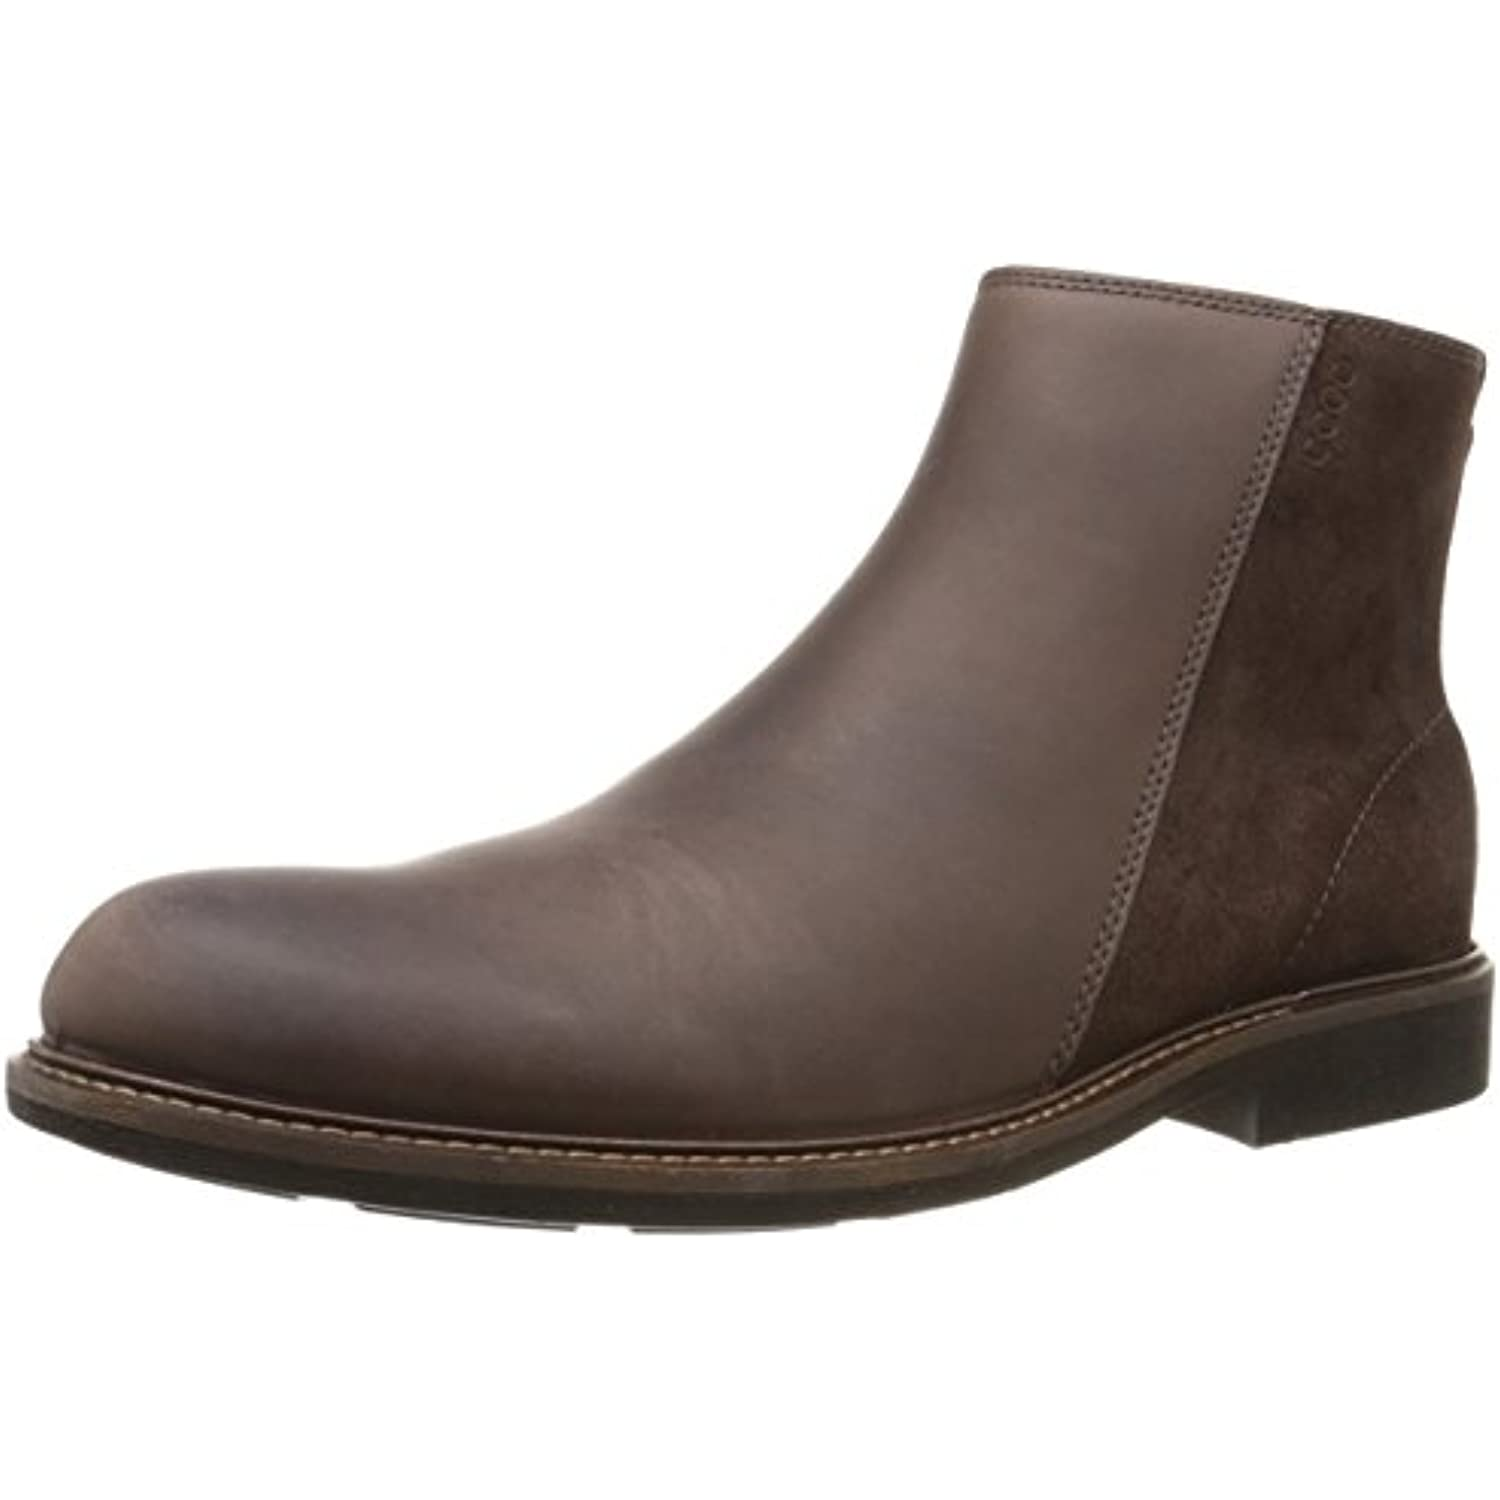 Ecco Findlay, Bottes Chelsea Courtes, Doublure Froide - Homme - B00RDFCKSA - Froide 6c9f9d